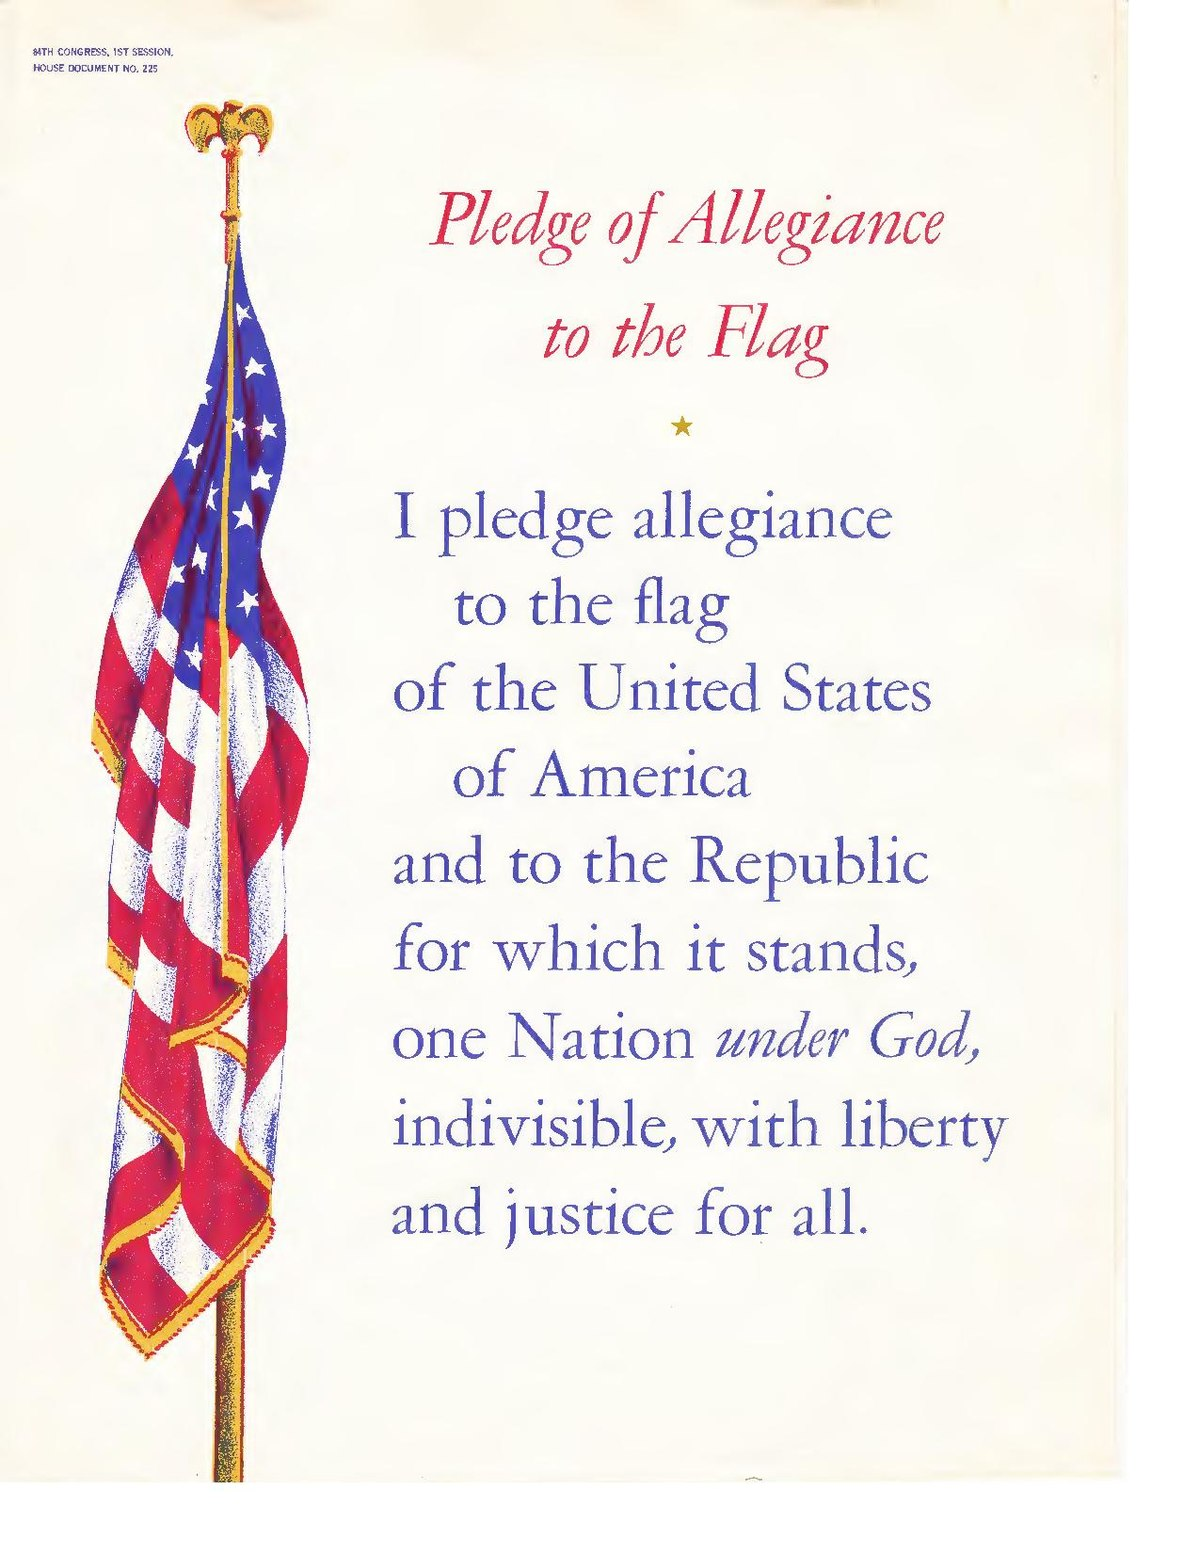 graphic regarding Pledge of Allegiance Printable identified as Pledge of Allegiance - Wikipedia